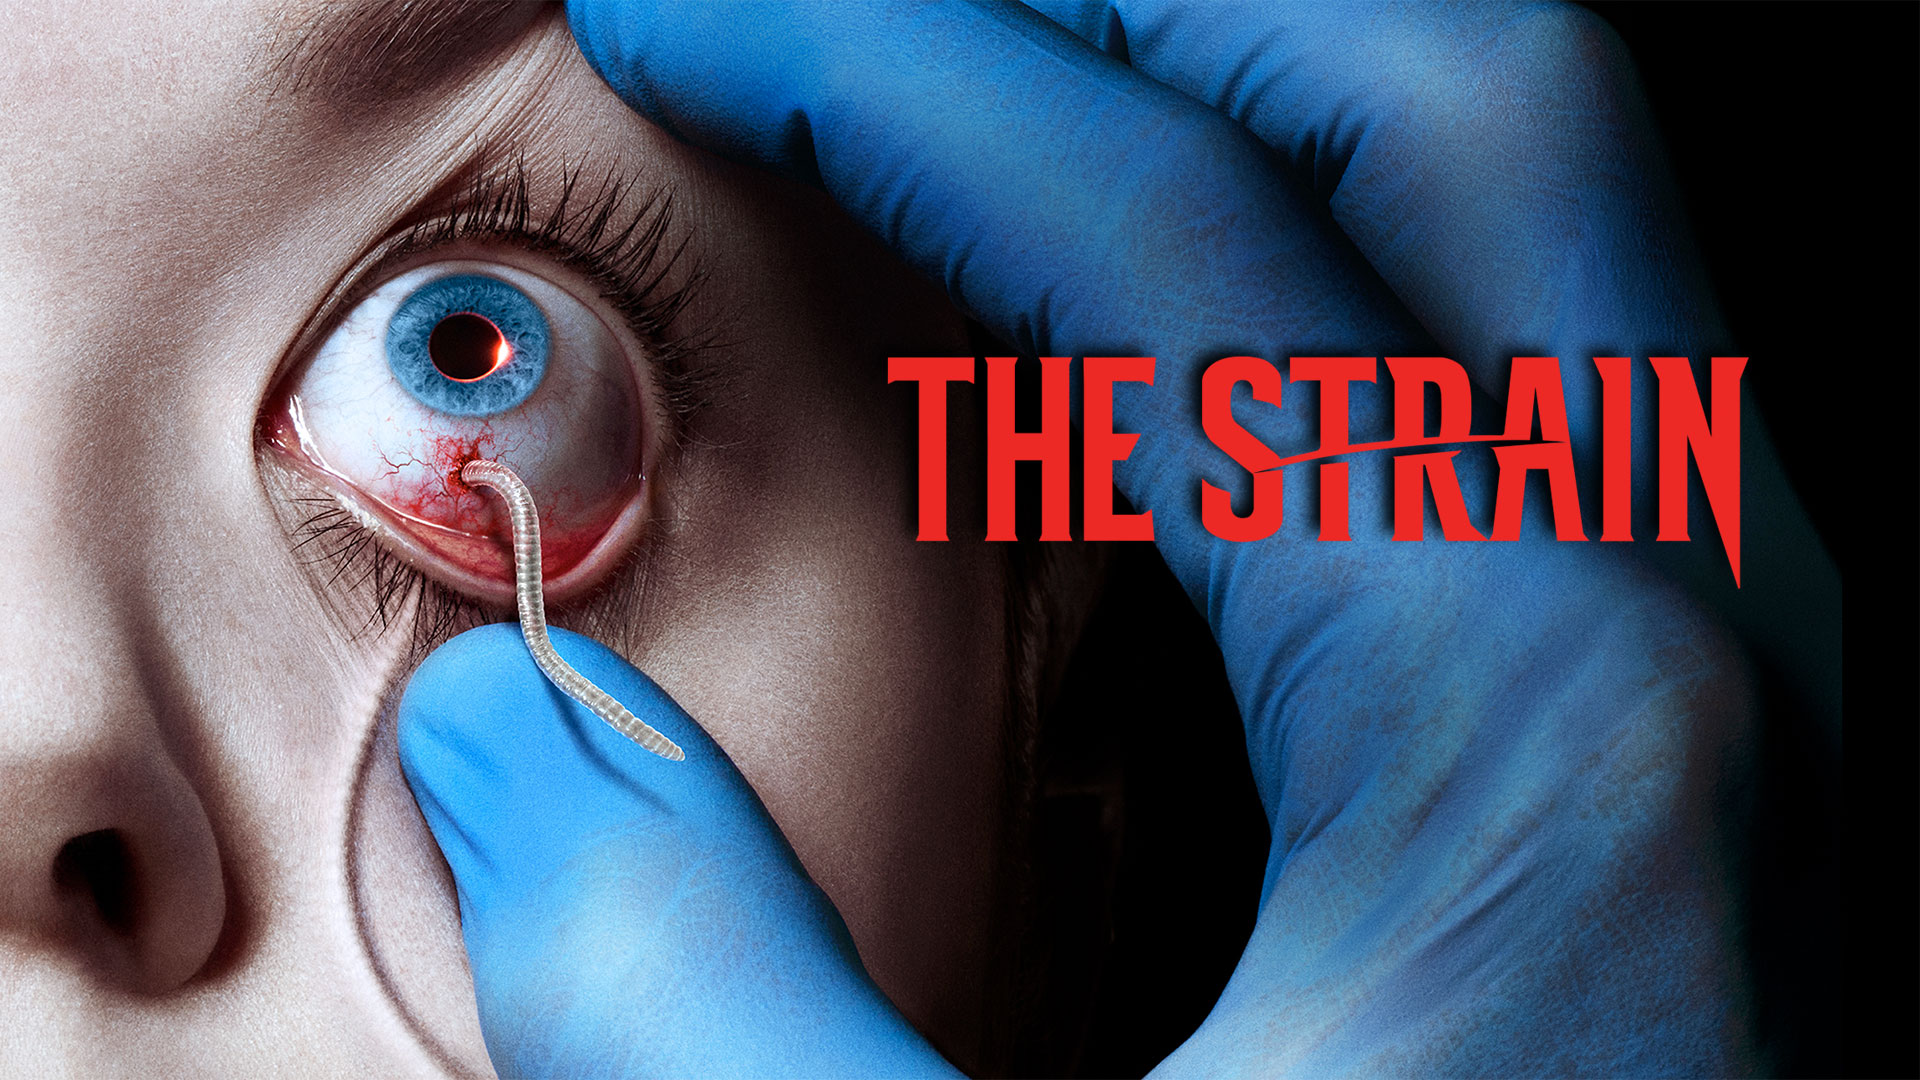 The strain vampire fuck sex porncraft movies